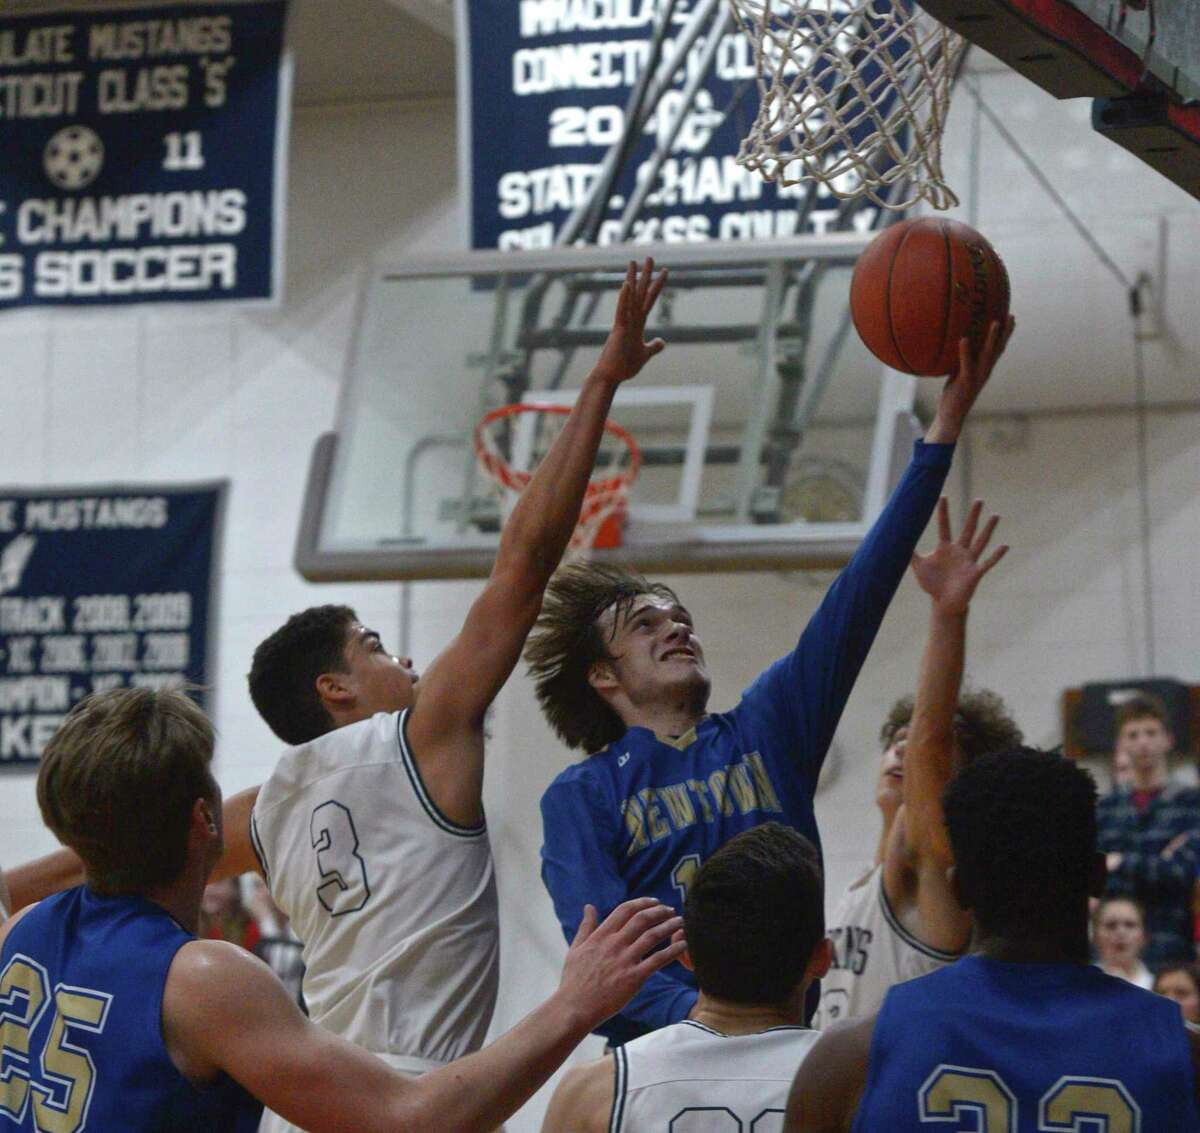 Newtown's Riley Ward (10) drives to the basket past Immaculate's Diego Echavarria (3) in the SWC boys basketball semifinal between No.4 Newtown and No.1 Immaculate, Tuesday night, March 3, 2020, at Immaculate High School, Danbury, Conn.